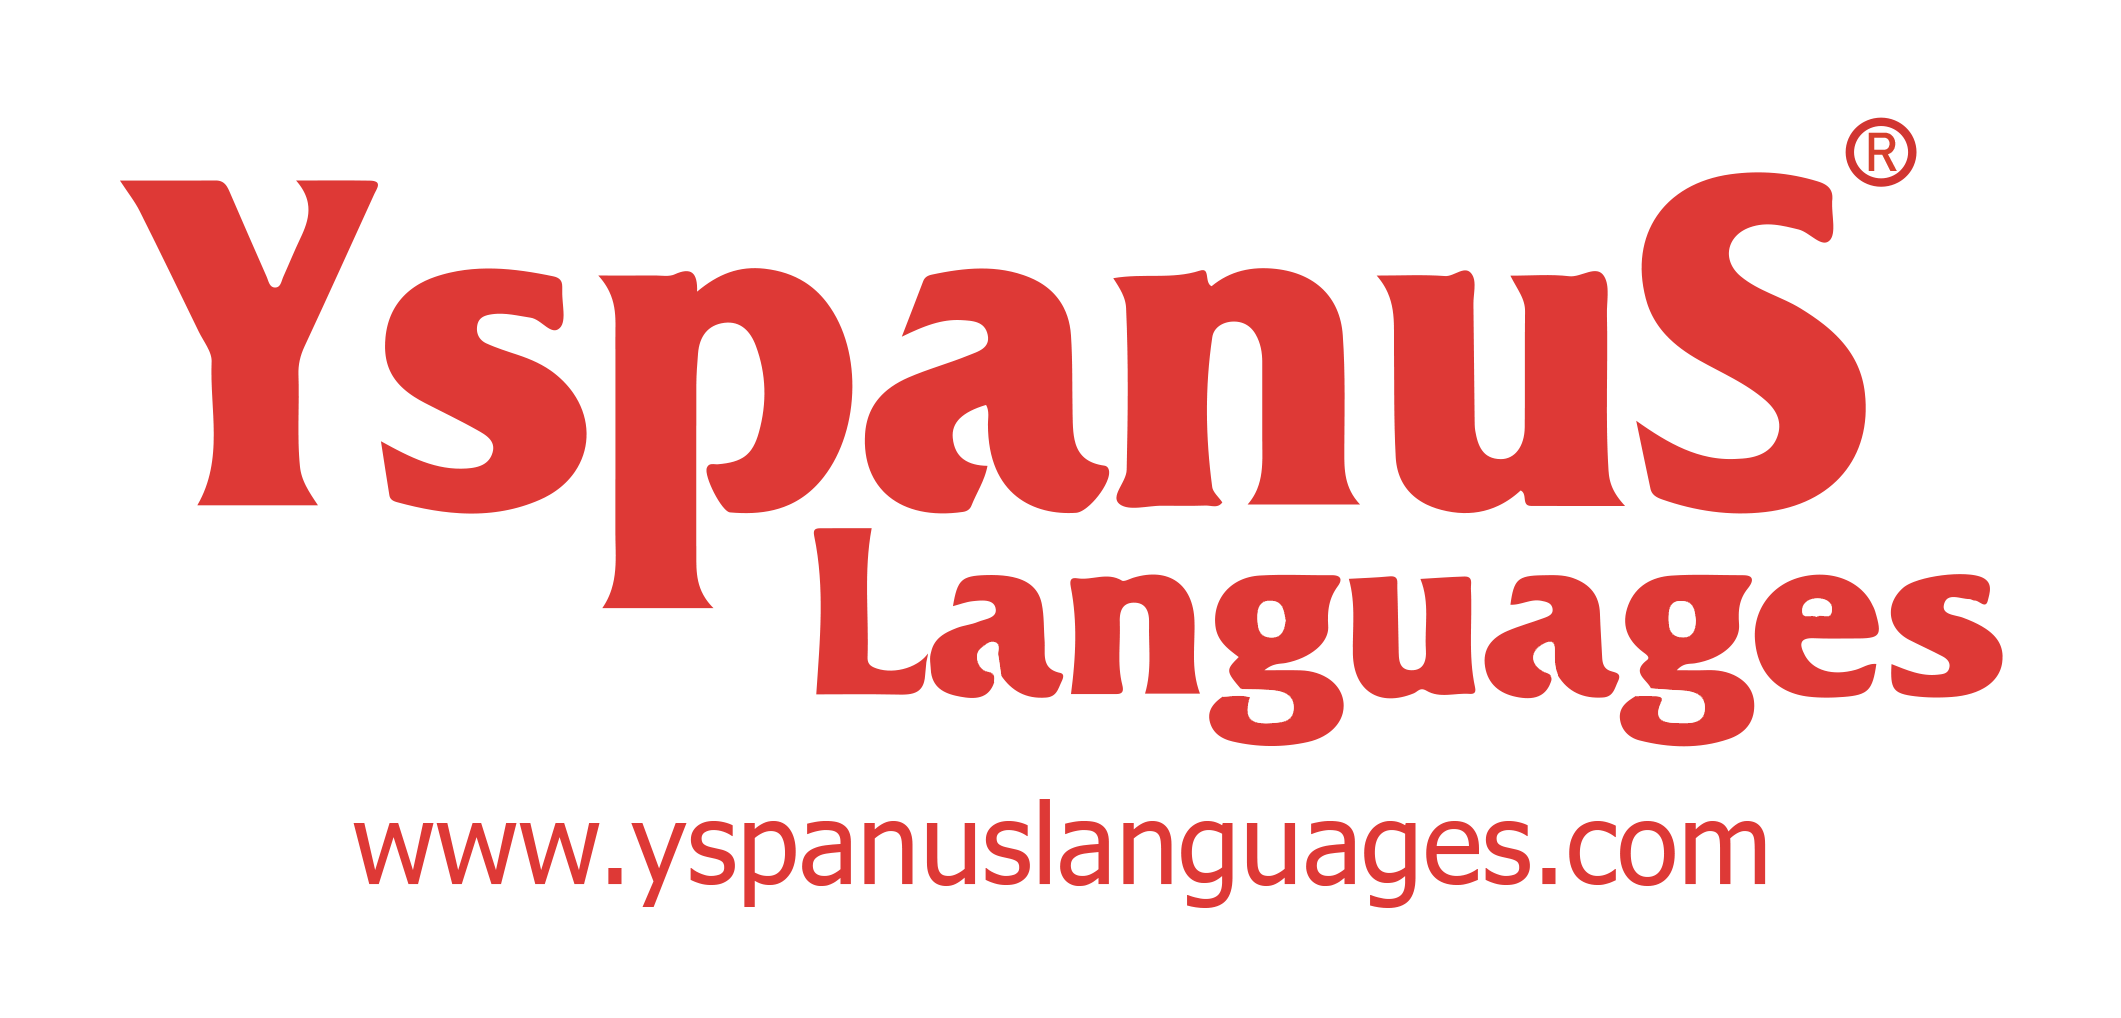 Yspanus Languages